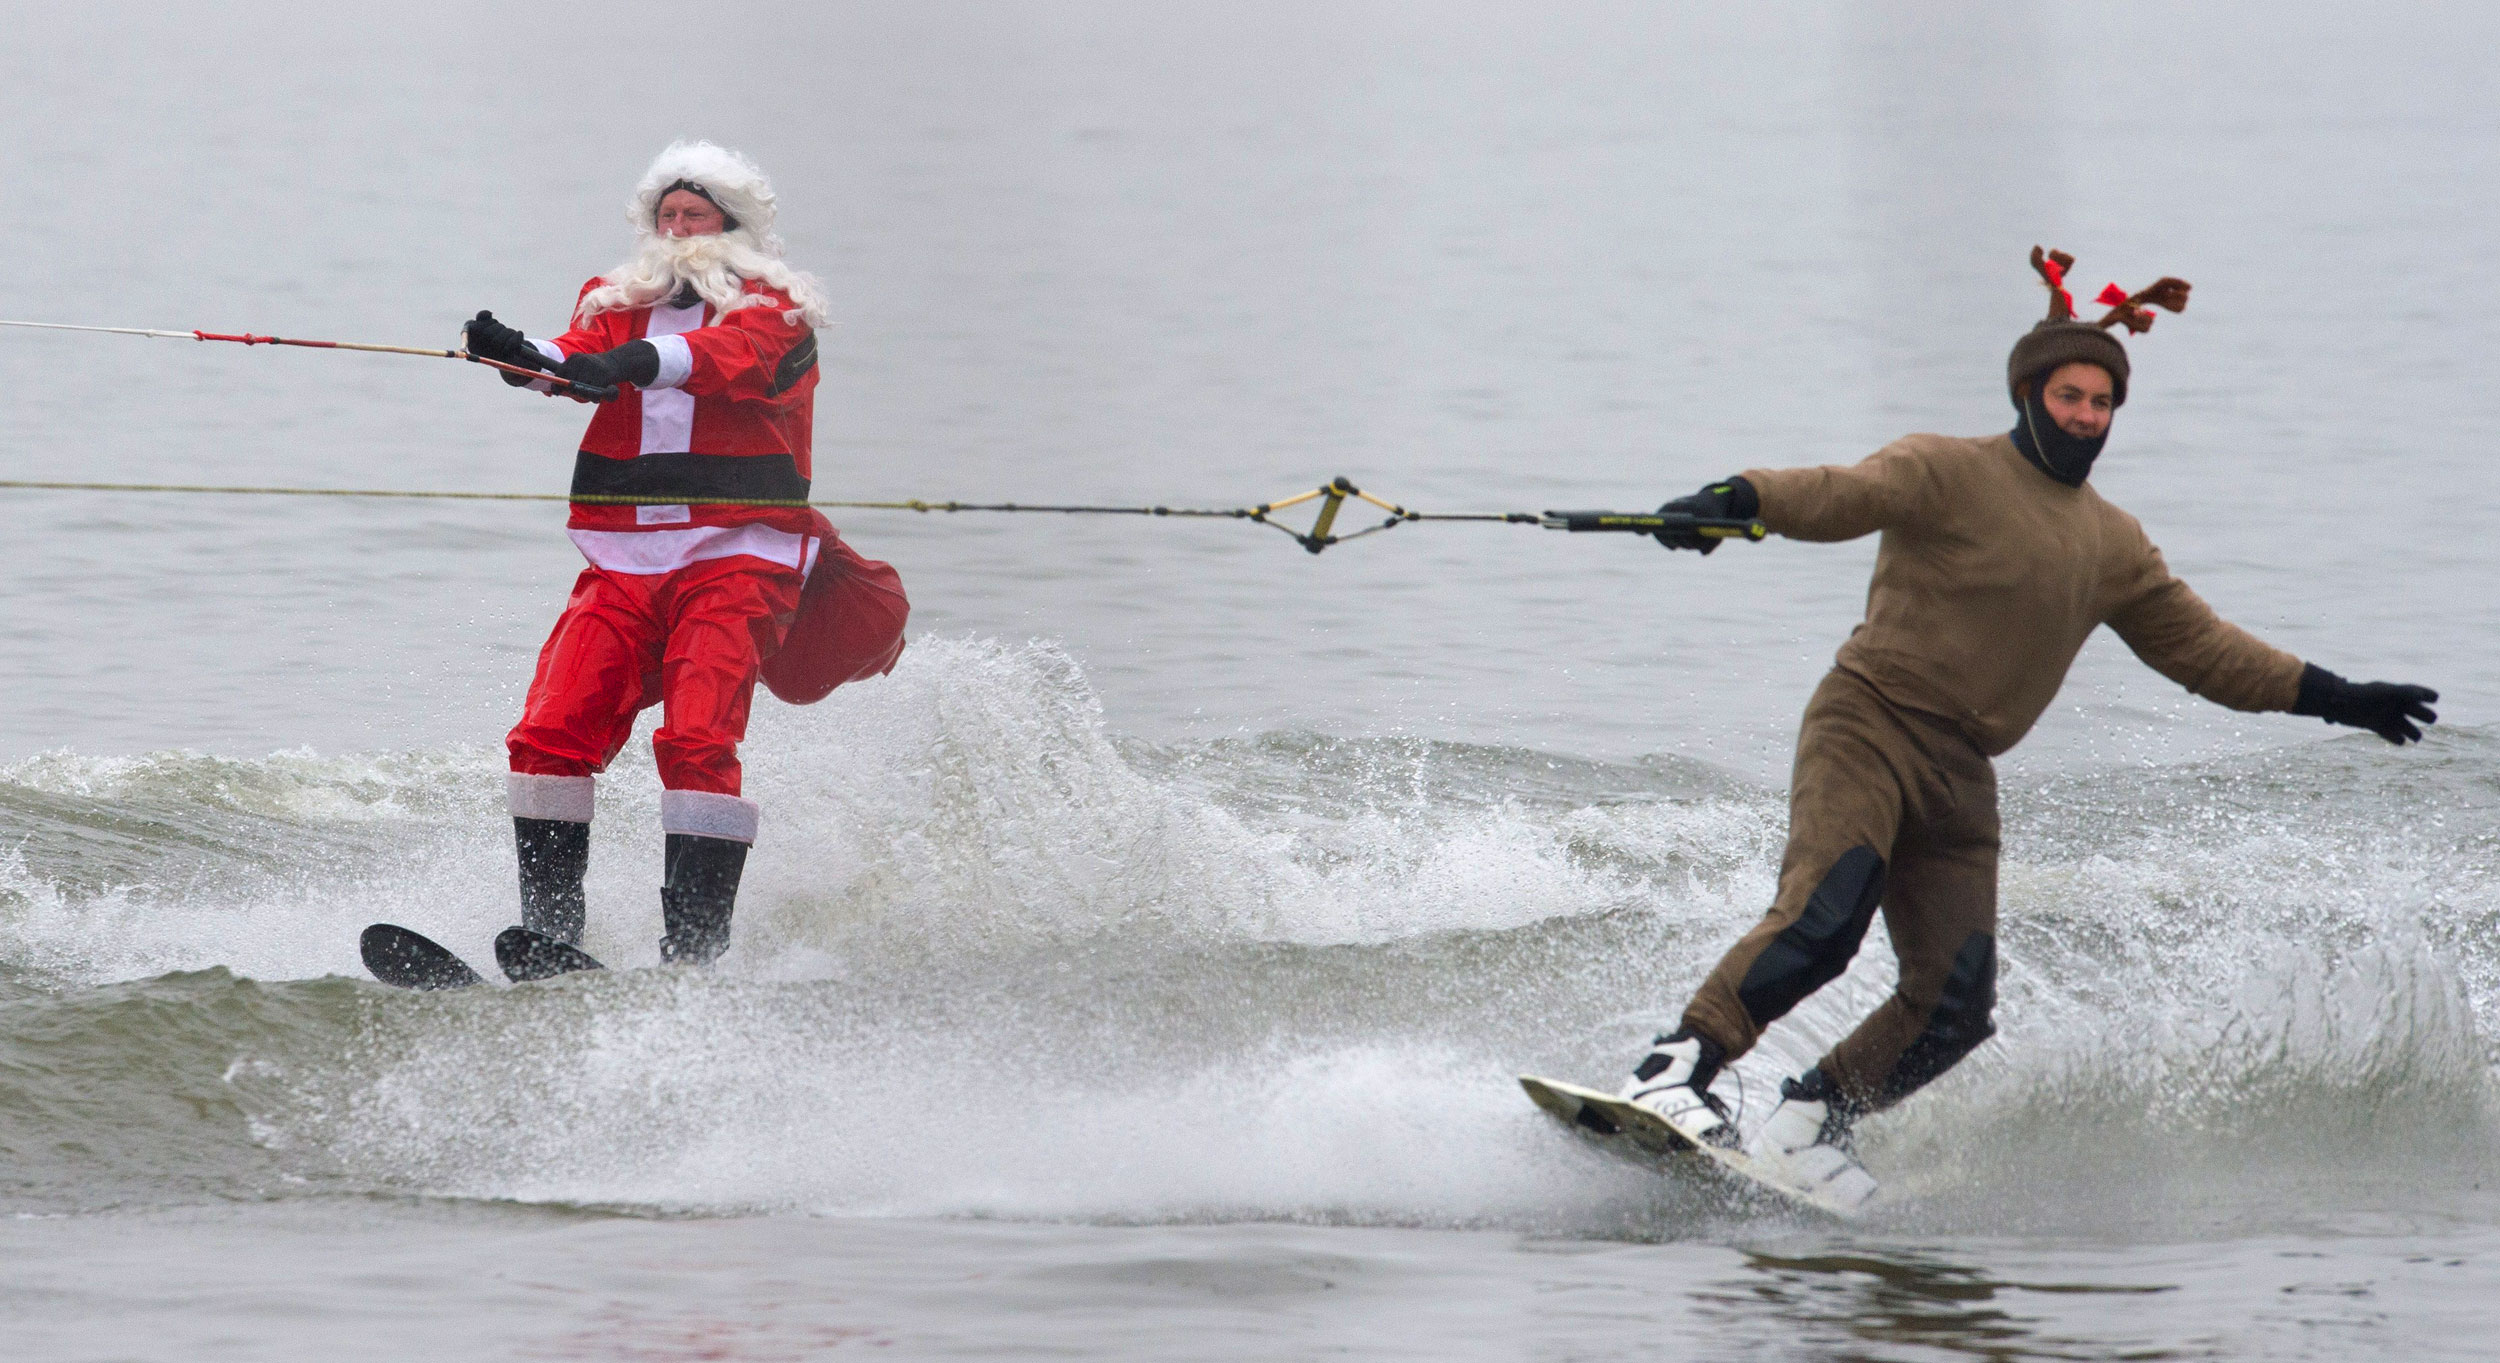 The water-skiing Santa and a Reindeer are seen along the Potomac River off Old Town Alexandria, Virginia, not far from Washington on Dec. 24, 2014 during the annual water-skiing Santa event.